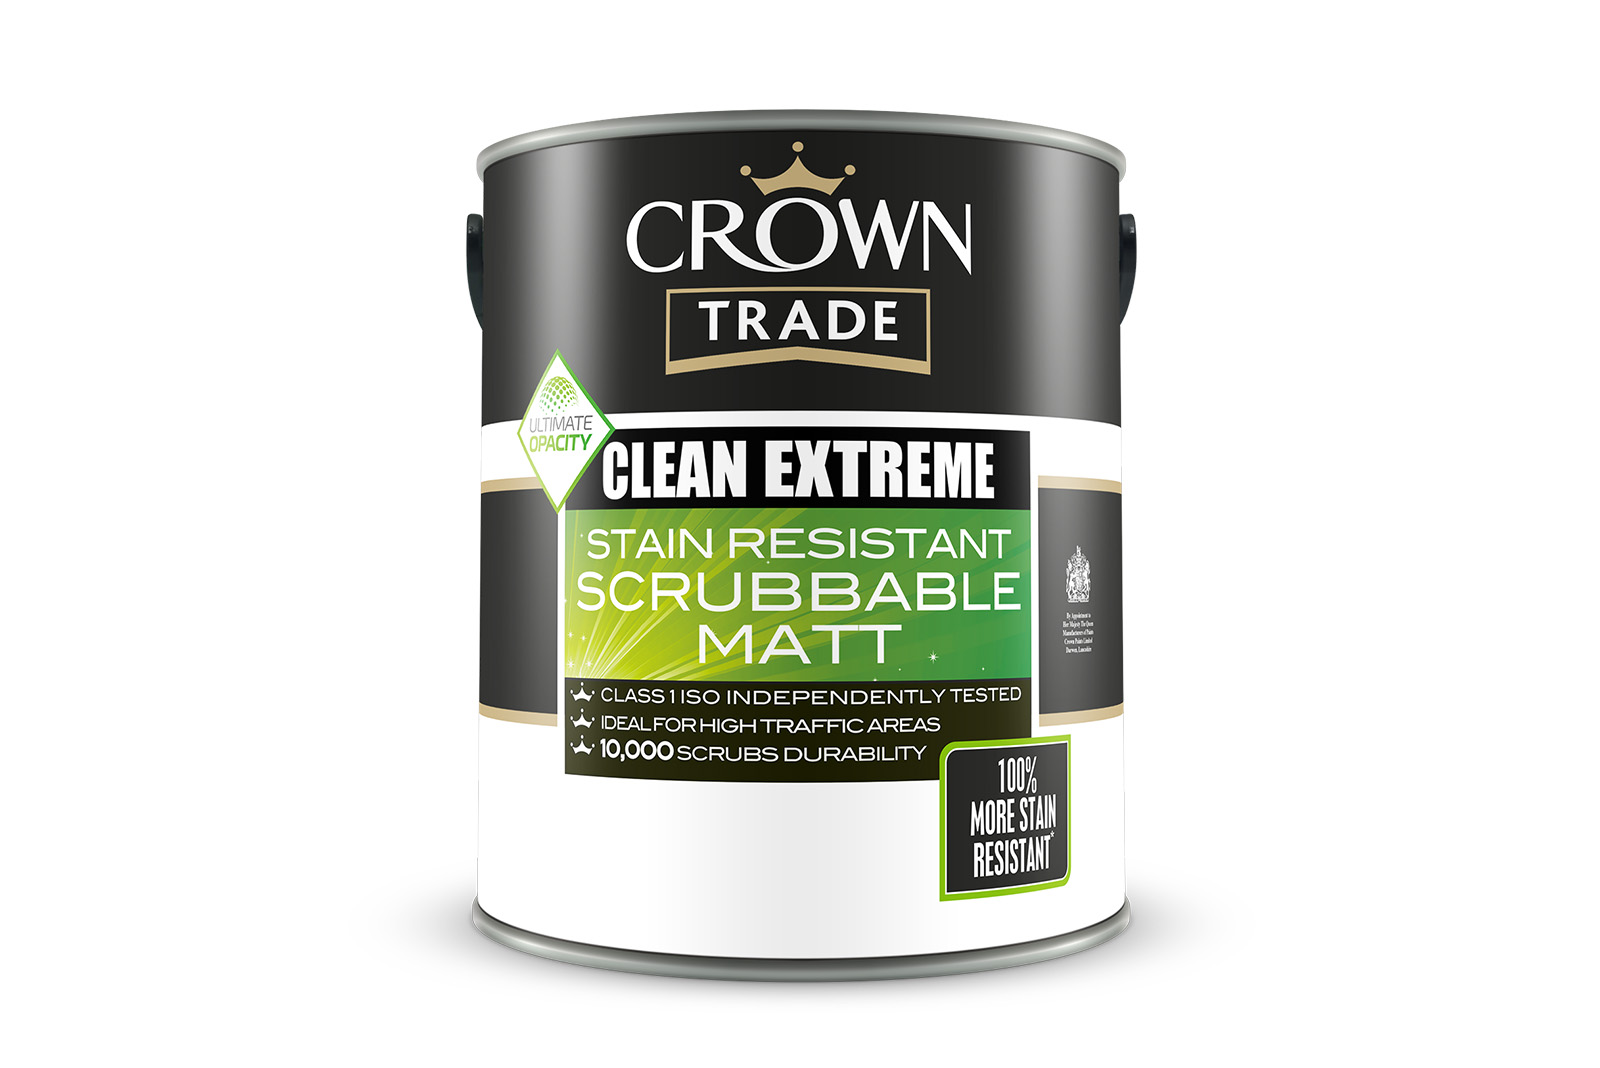 5 X 5L Crown Trade Paint Cans to win